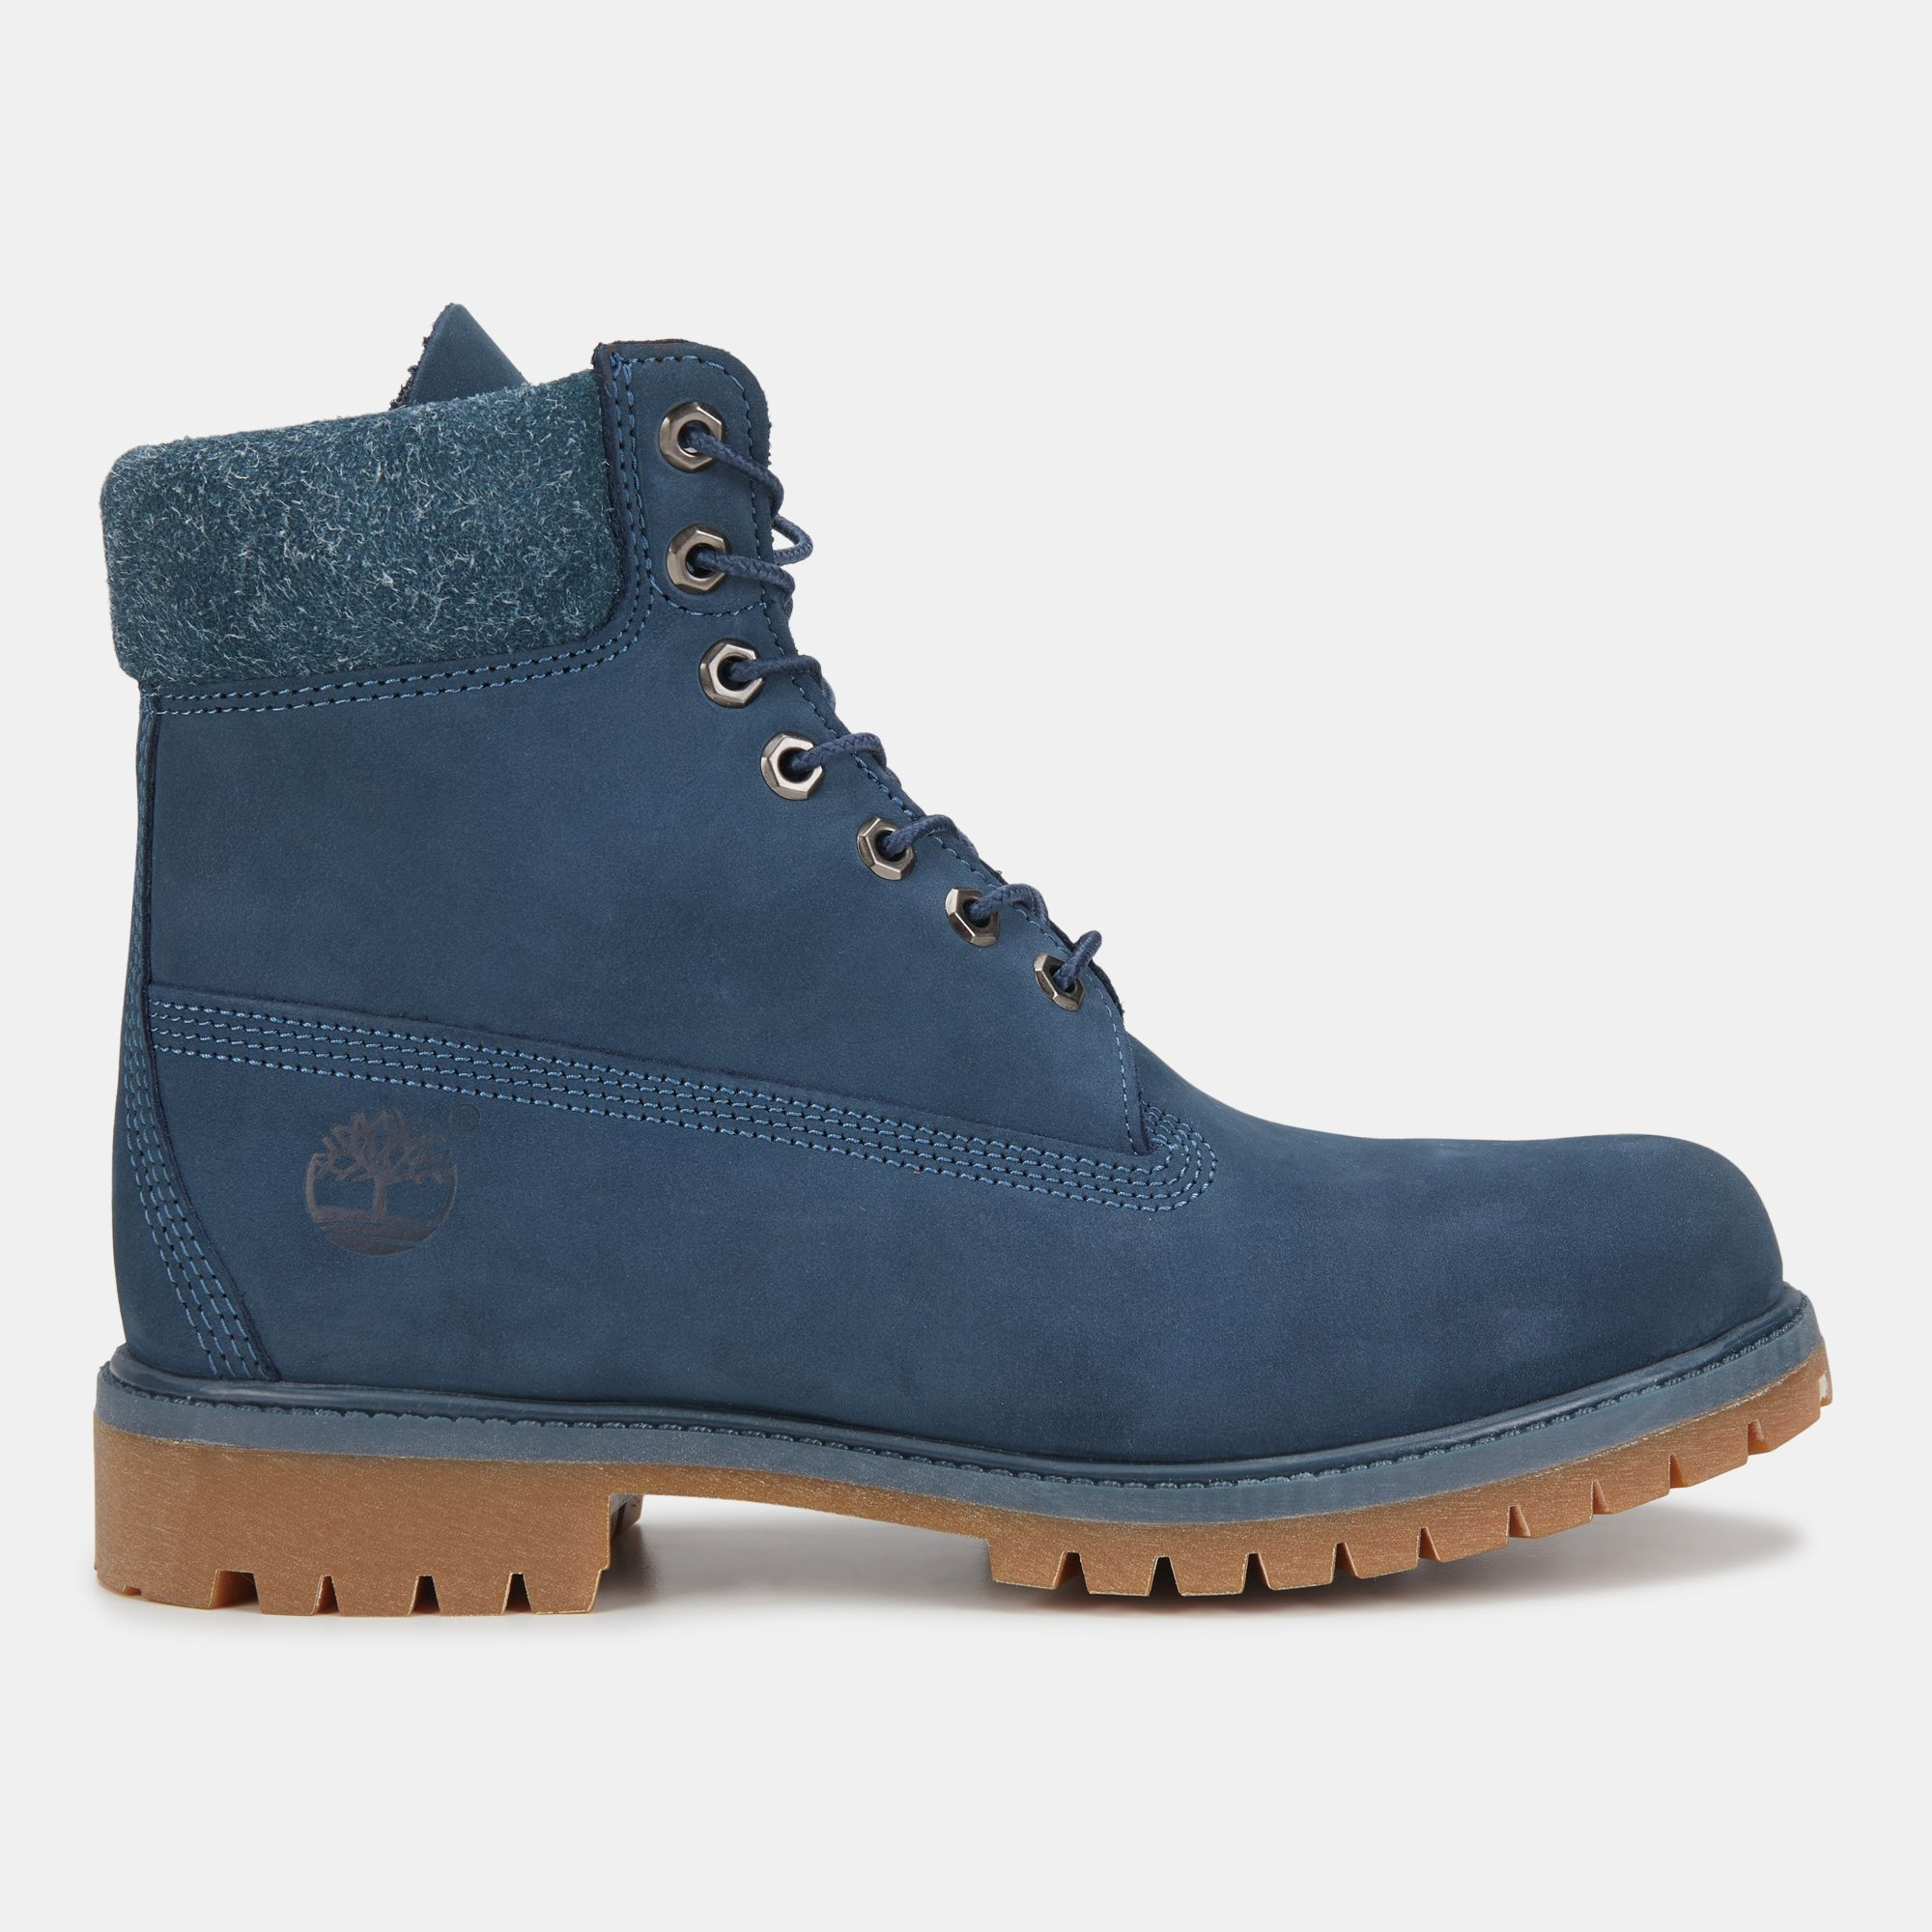 3f3b51d73a6 Timberland Icon Collection 6 Inch Premium Waterproof Boot | Boots ...